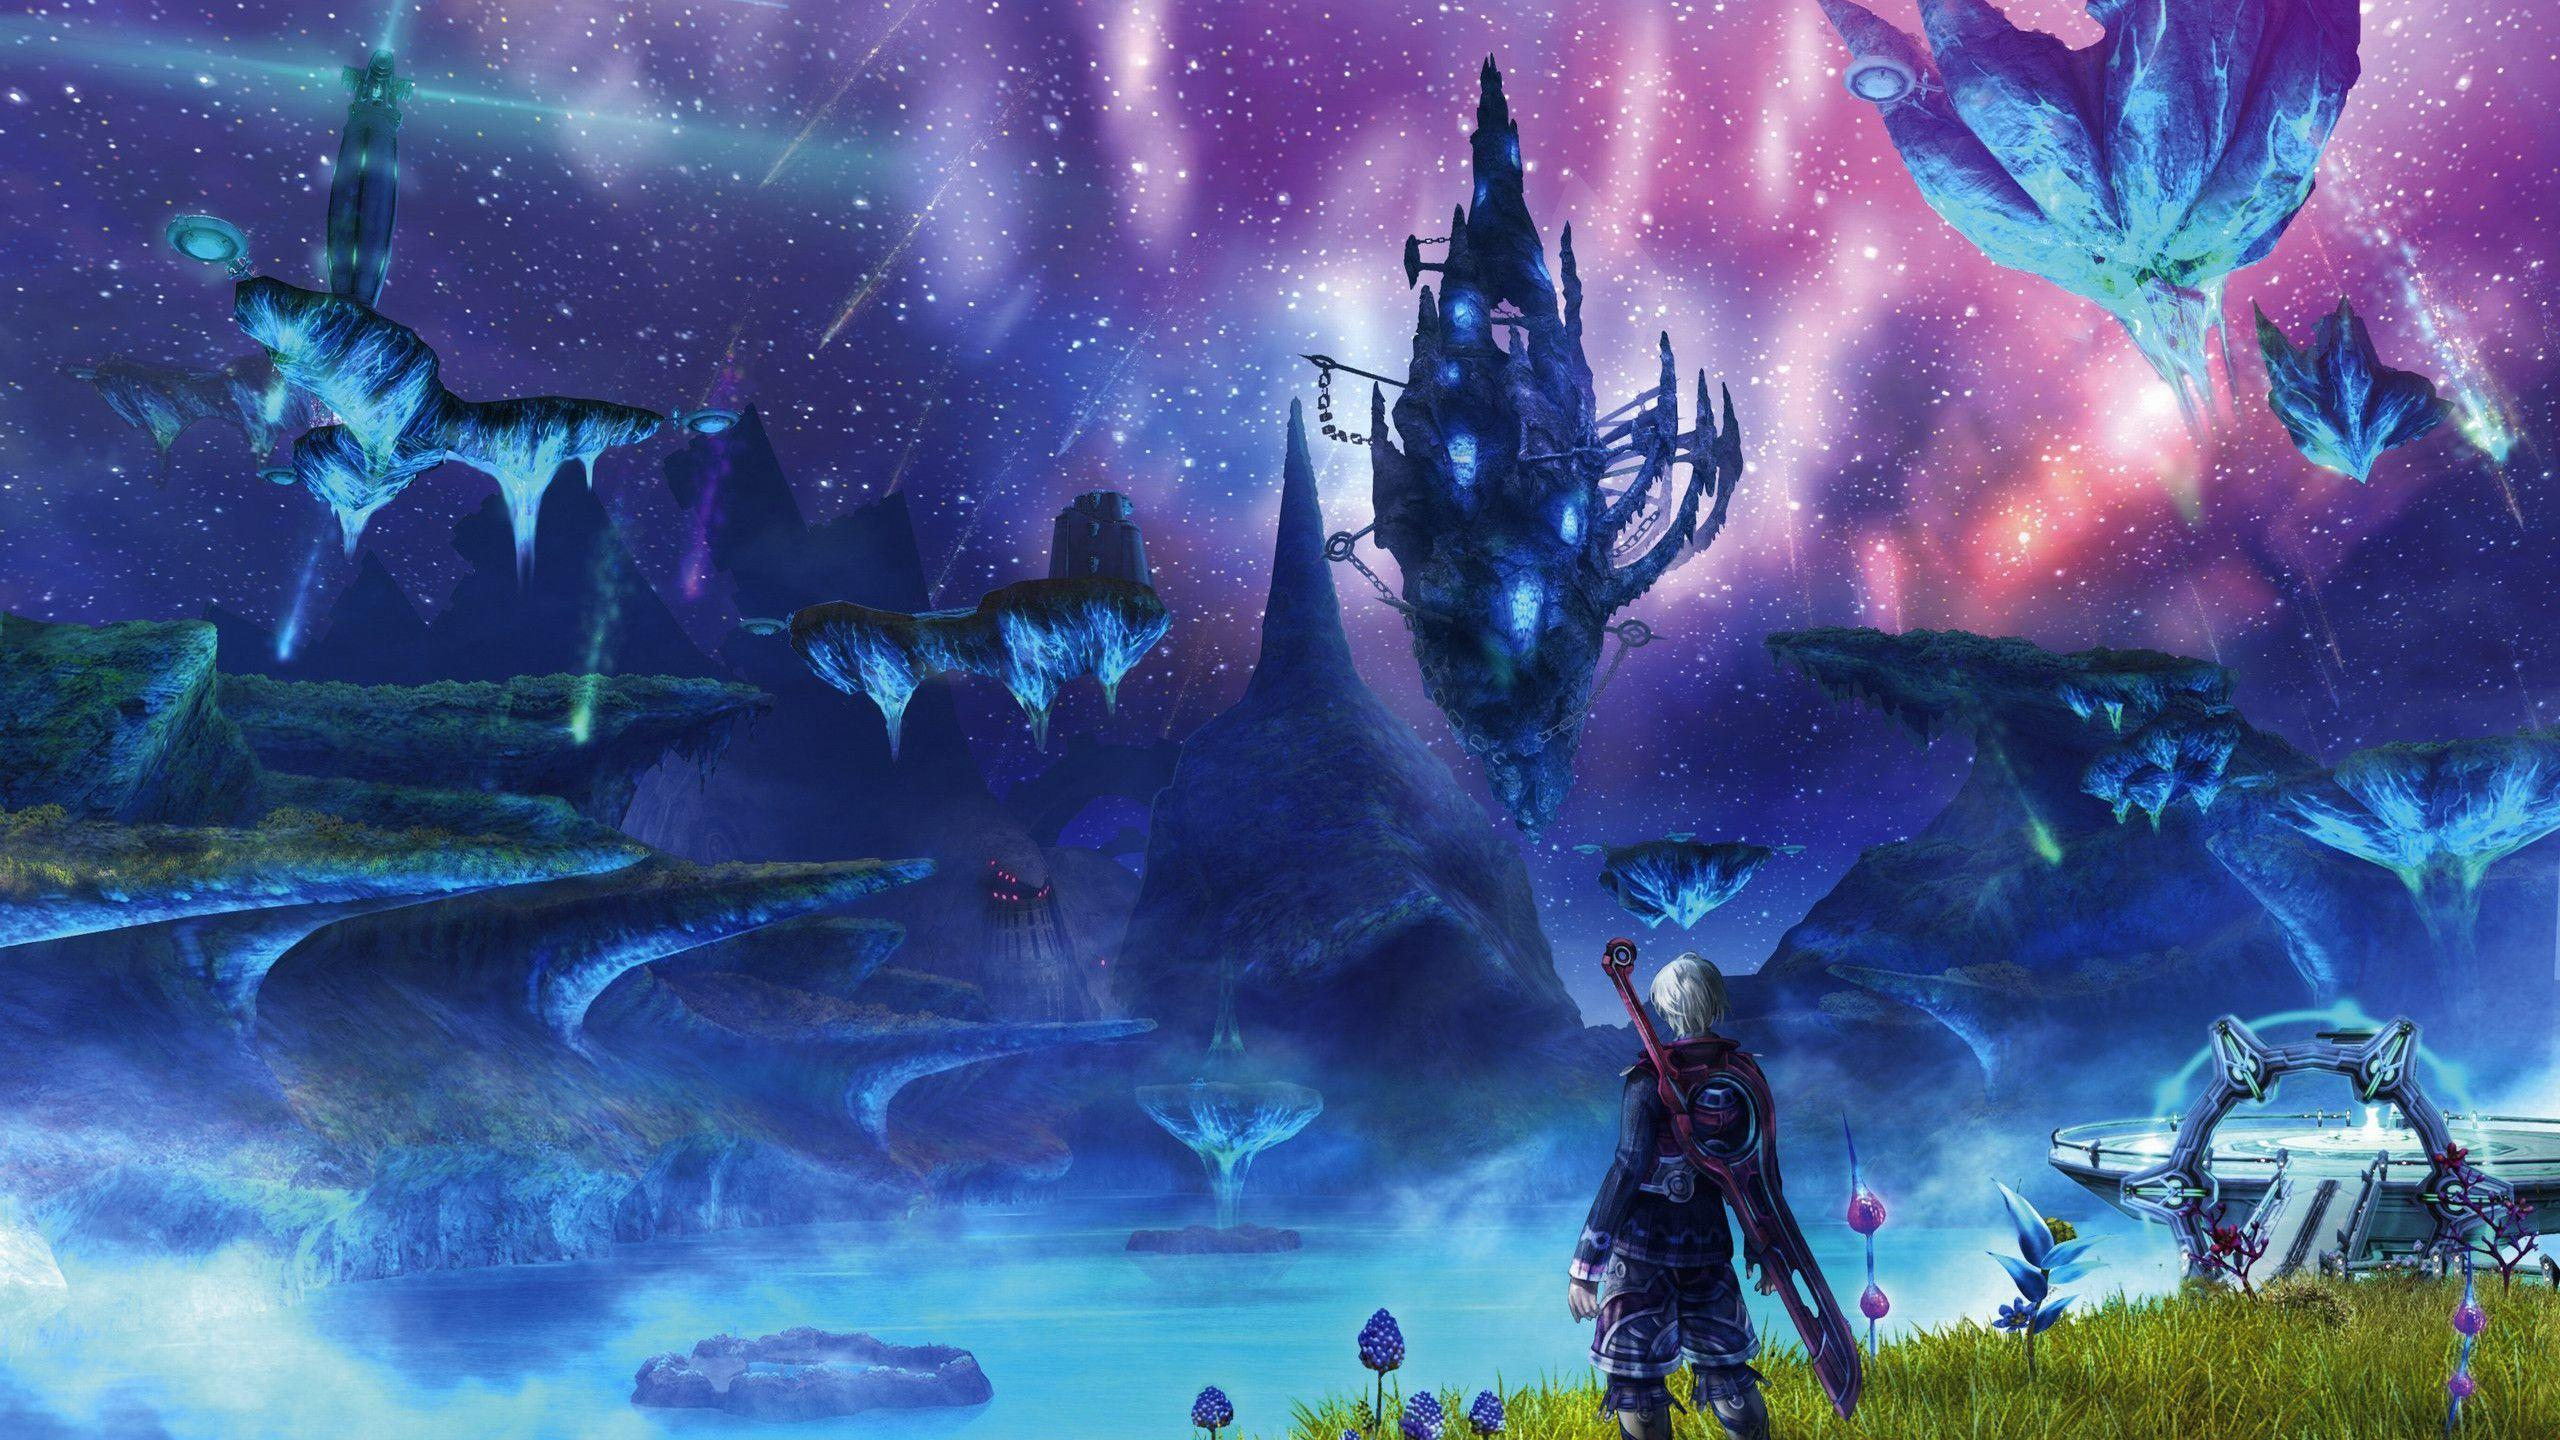 Download Xenoblade Hd Wallpaper Hd Backgrounds Download